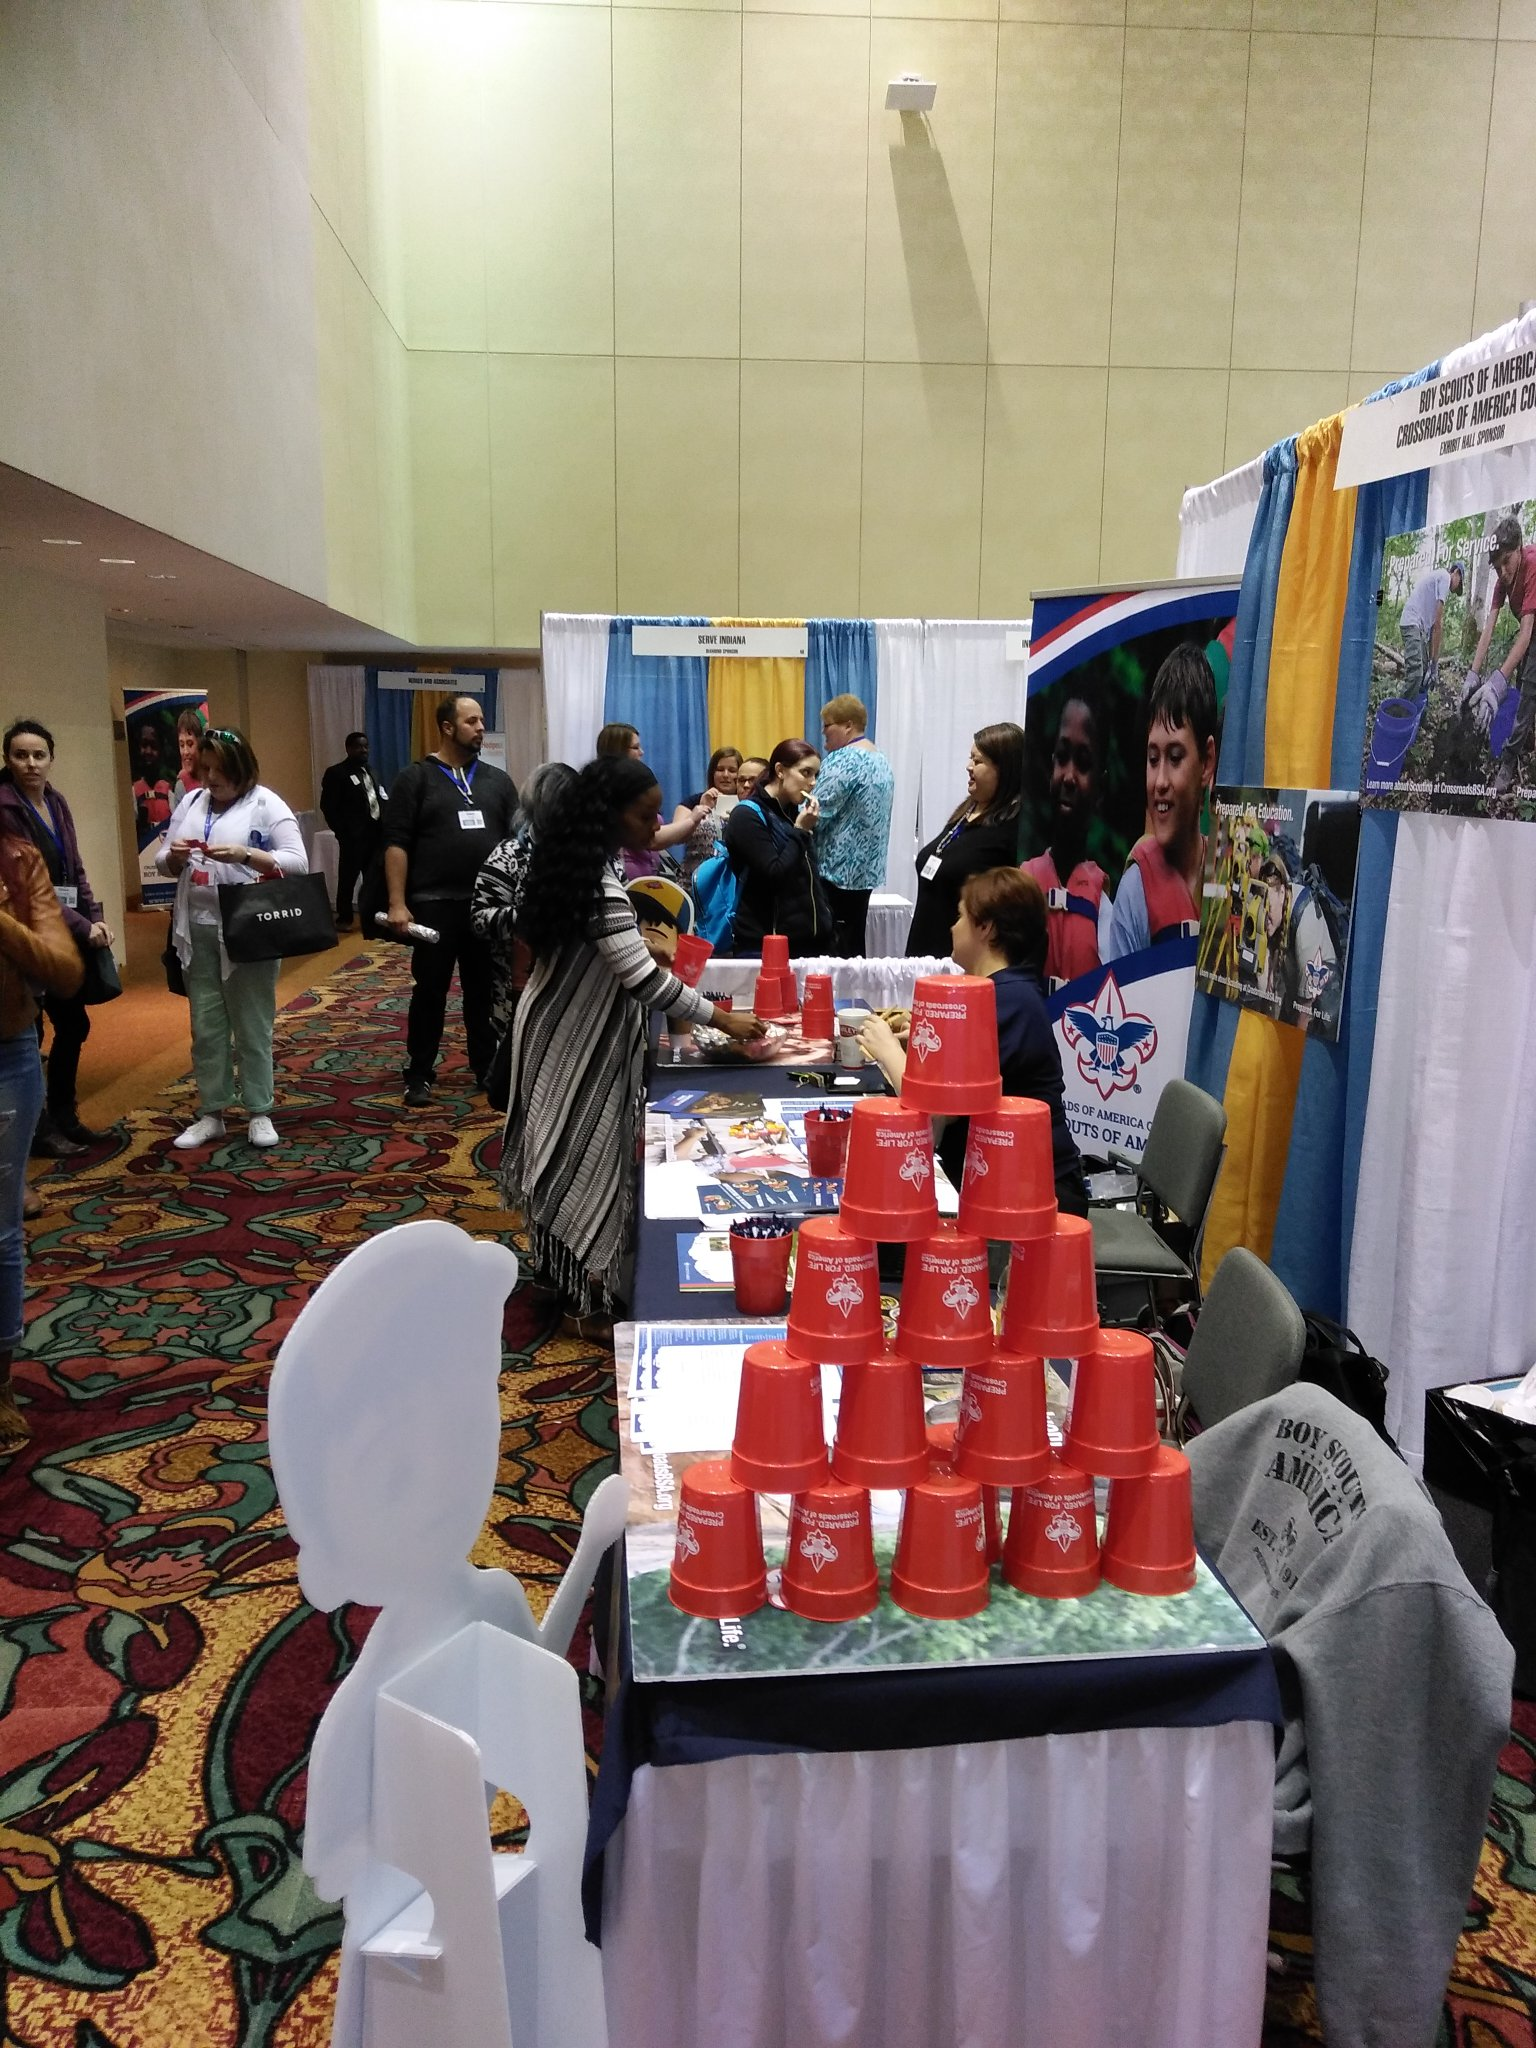 We had fun networking & doing some safe candy-catapulting with adults at our @BSACrossroads booth at the #IANsummit2017 https://t.co/XWMQ99CSqP